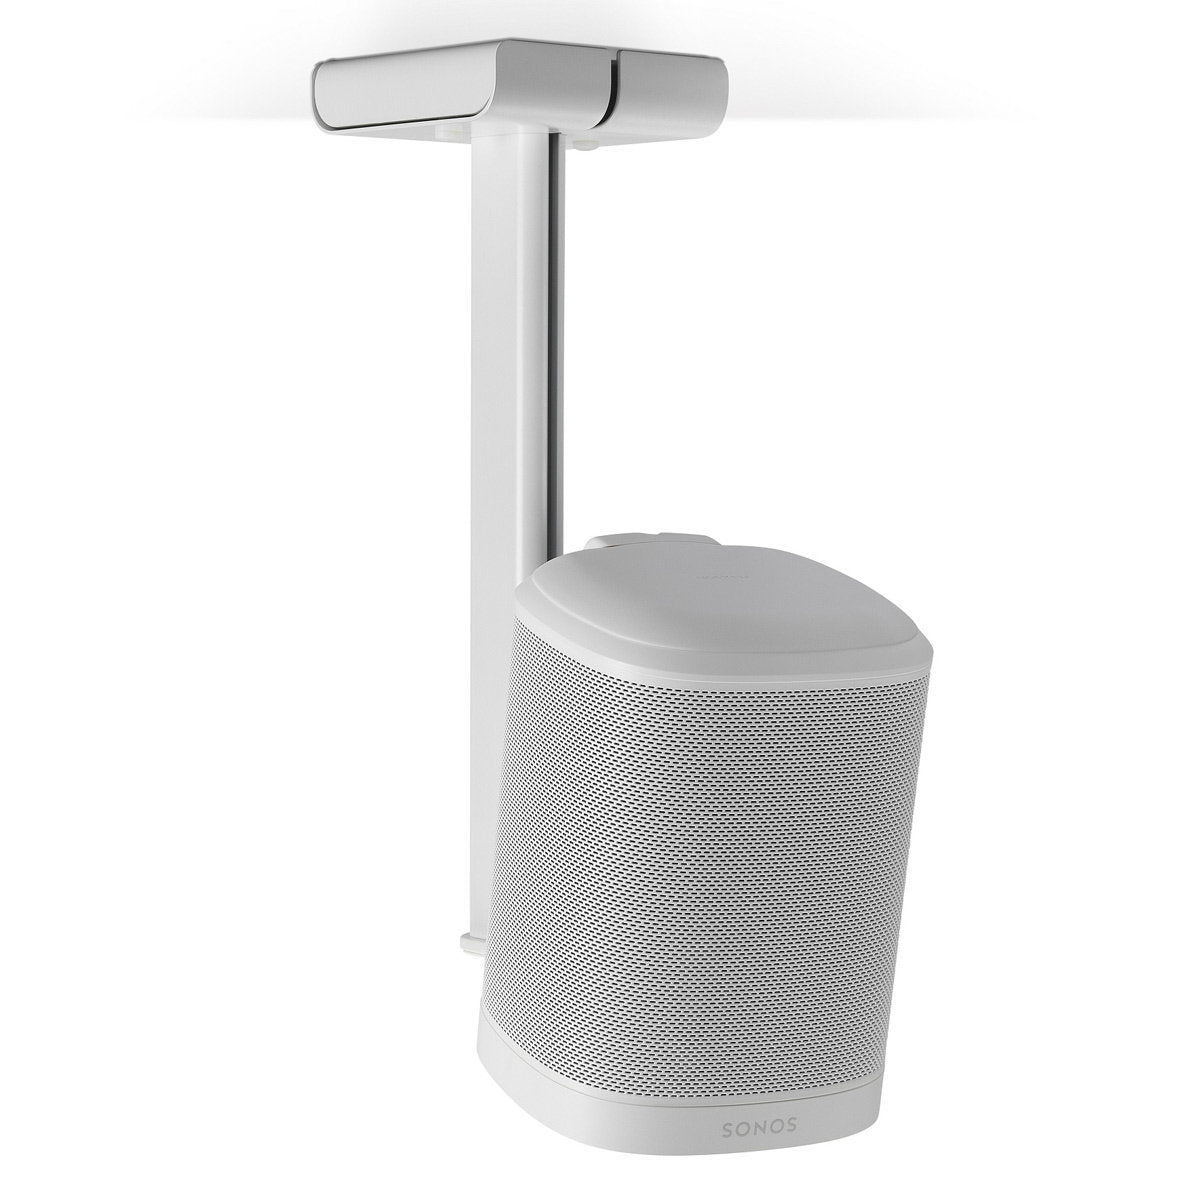 Flexson: Ceiling Mount For Sonos 1 or Play 1 - White (AAV-FLXS1CM1011)